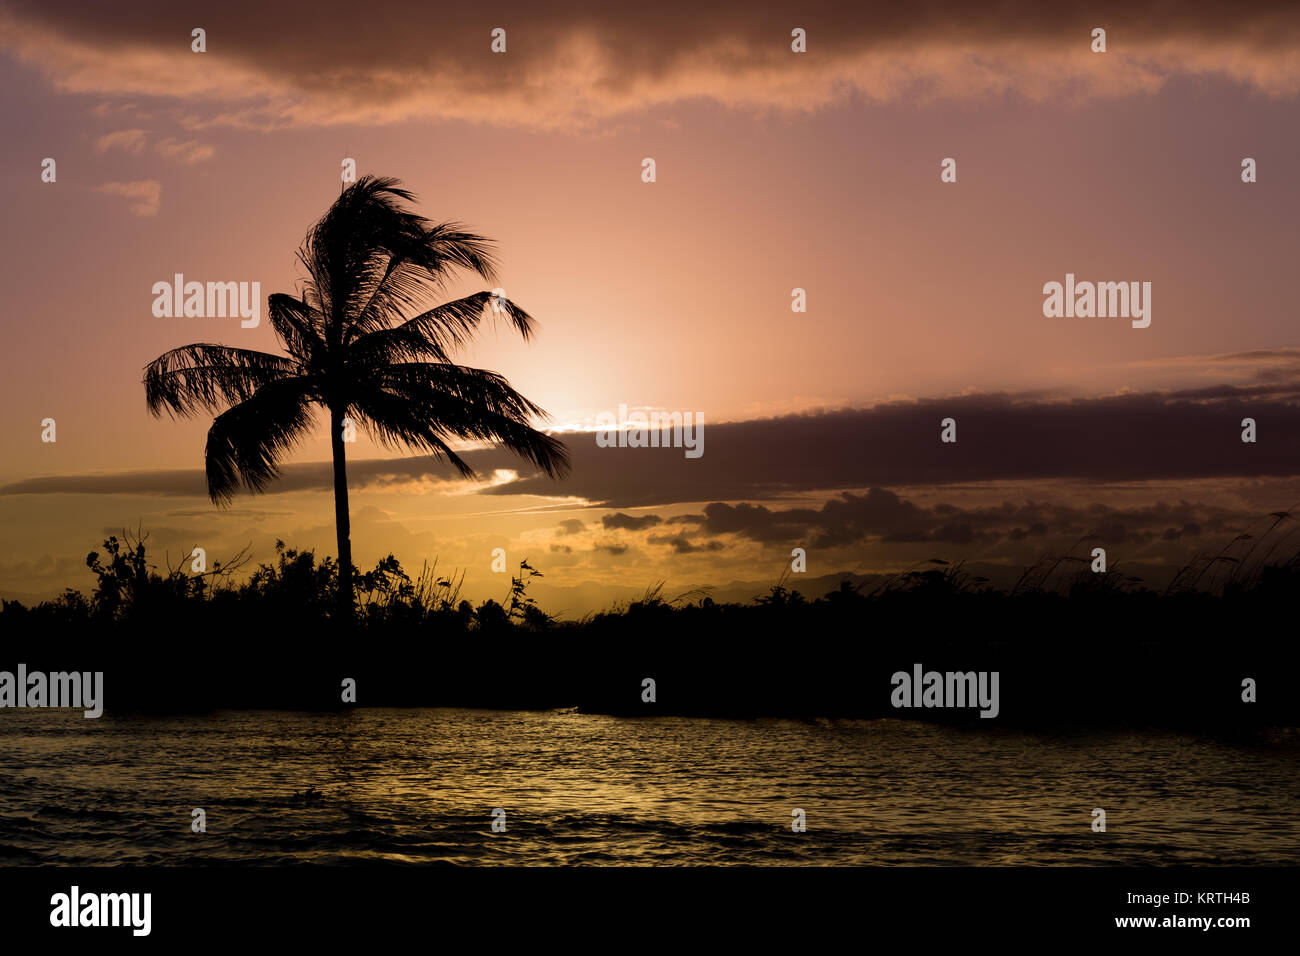 Coconut-tree palm silhouette and sunset over the river Stock Photo